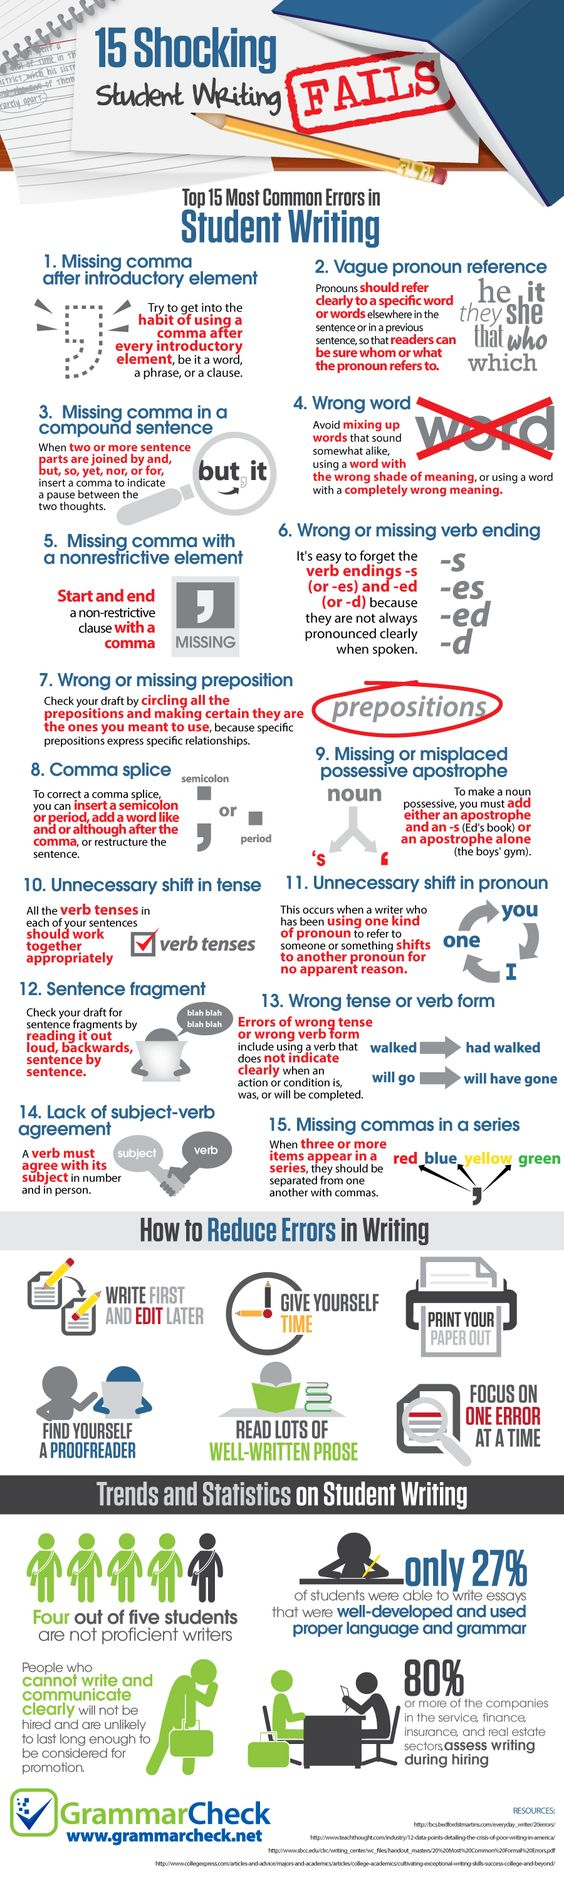 shocking student writing fails infographic about writing this could be a fine handout or poster for reminding all students but especially ells still struggling english grammar of the most common writing